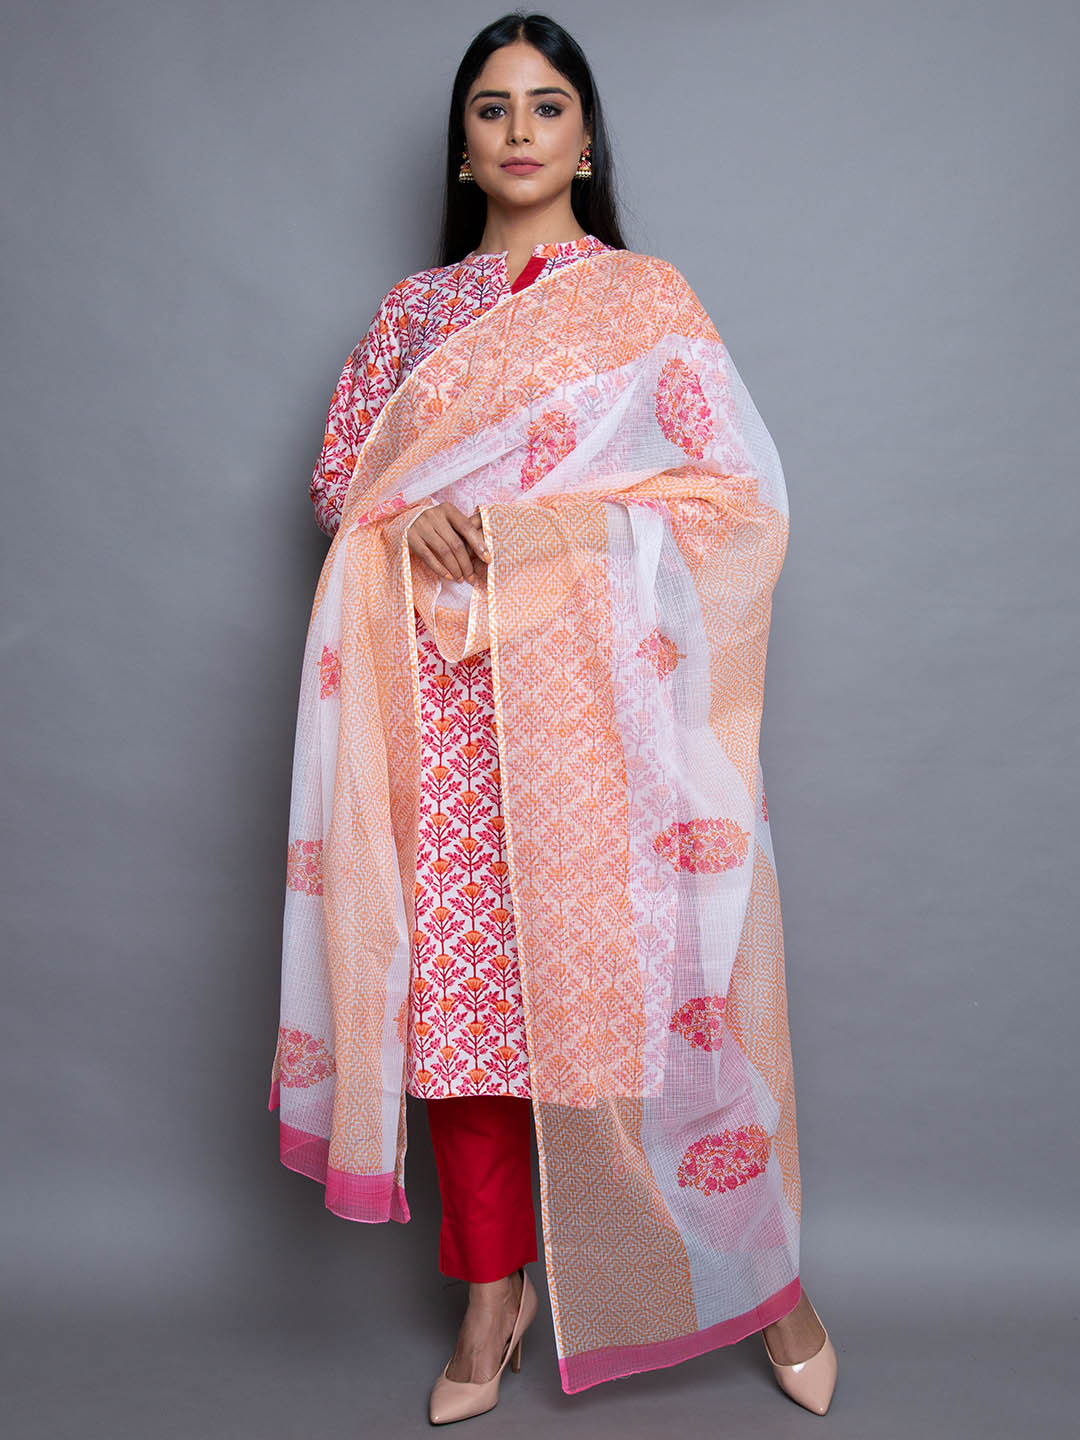 Cotton Printed Suit With Dupatta